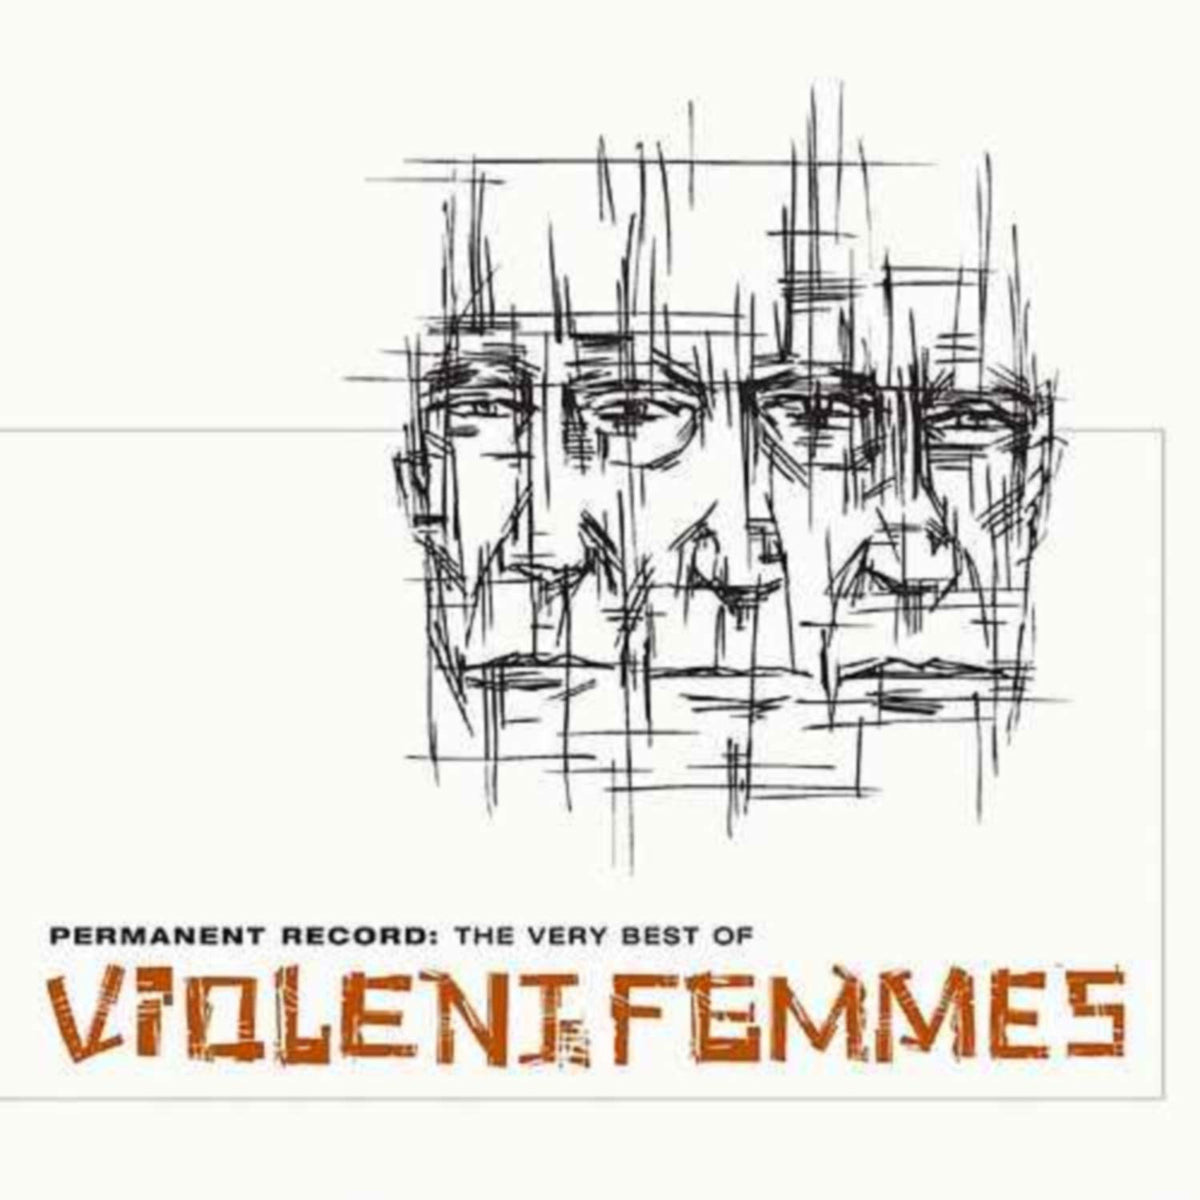 Violent Femmes: Permanent Record - The Very Best of (Colored Vinyl) Vinyl 2LP (Record Store Day)